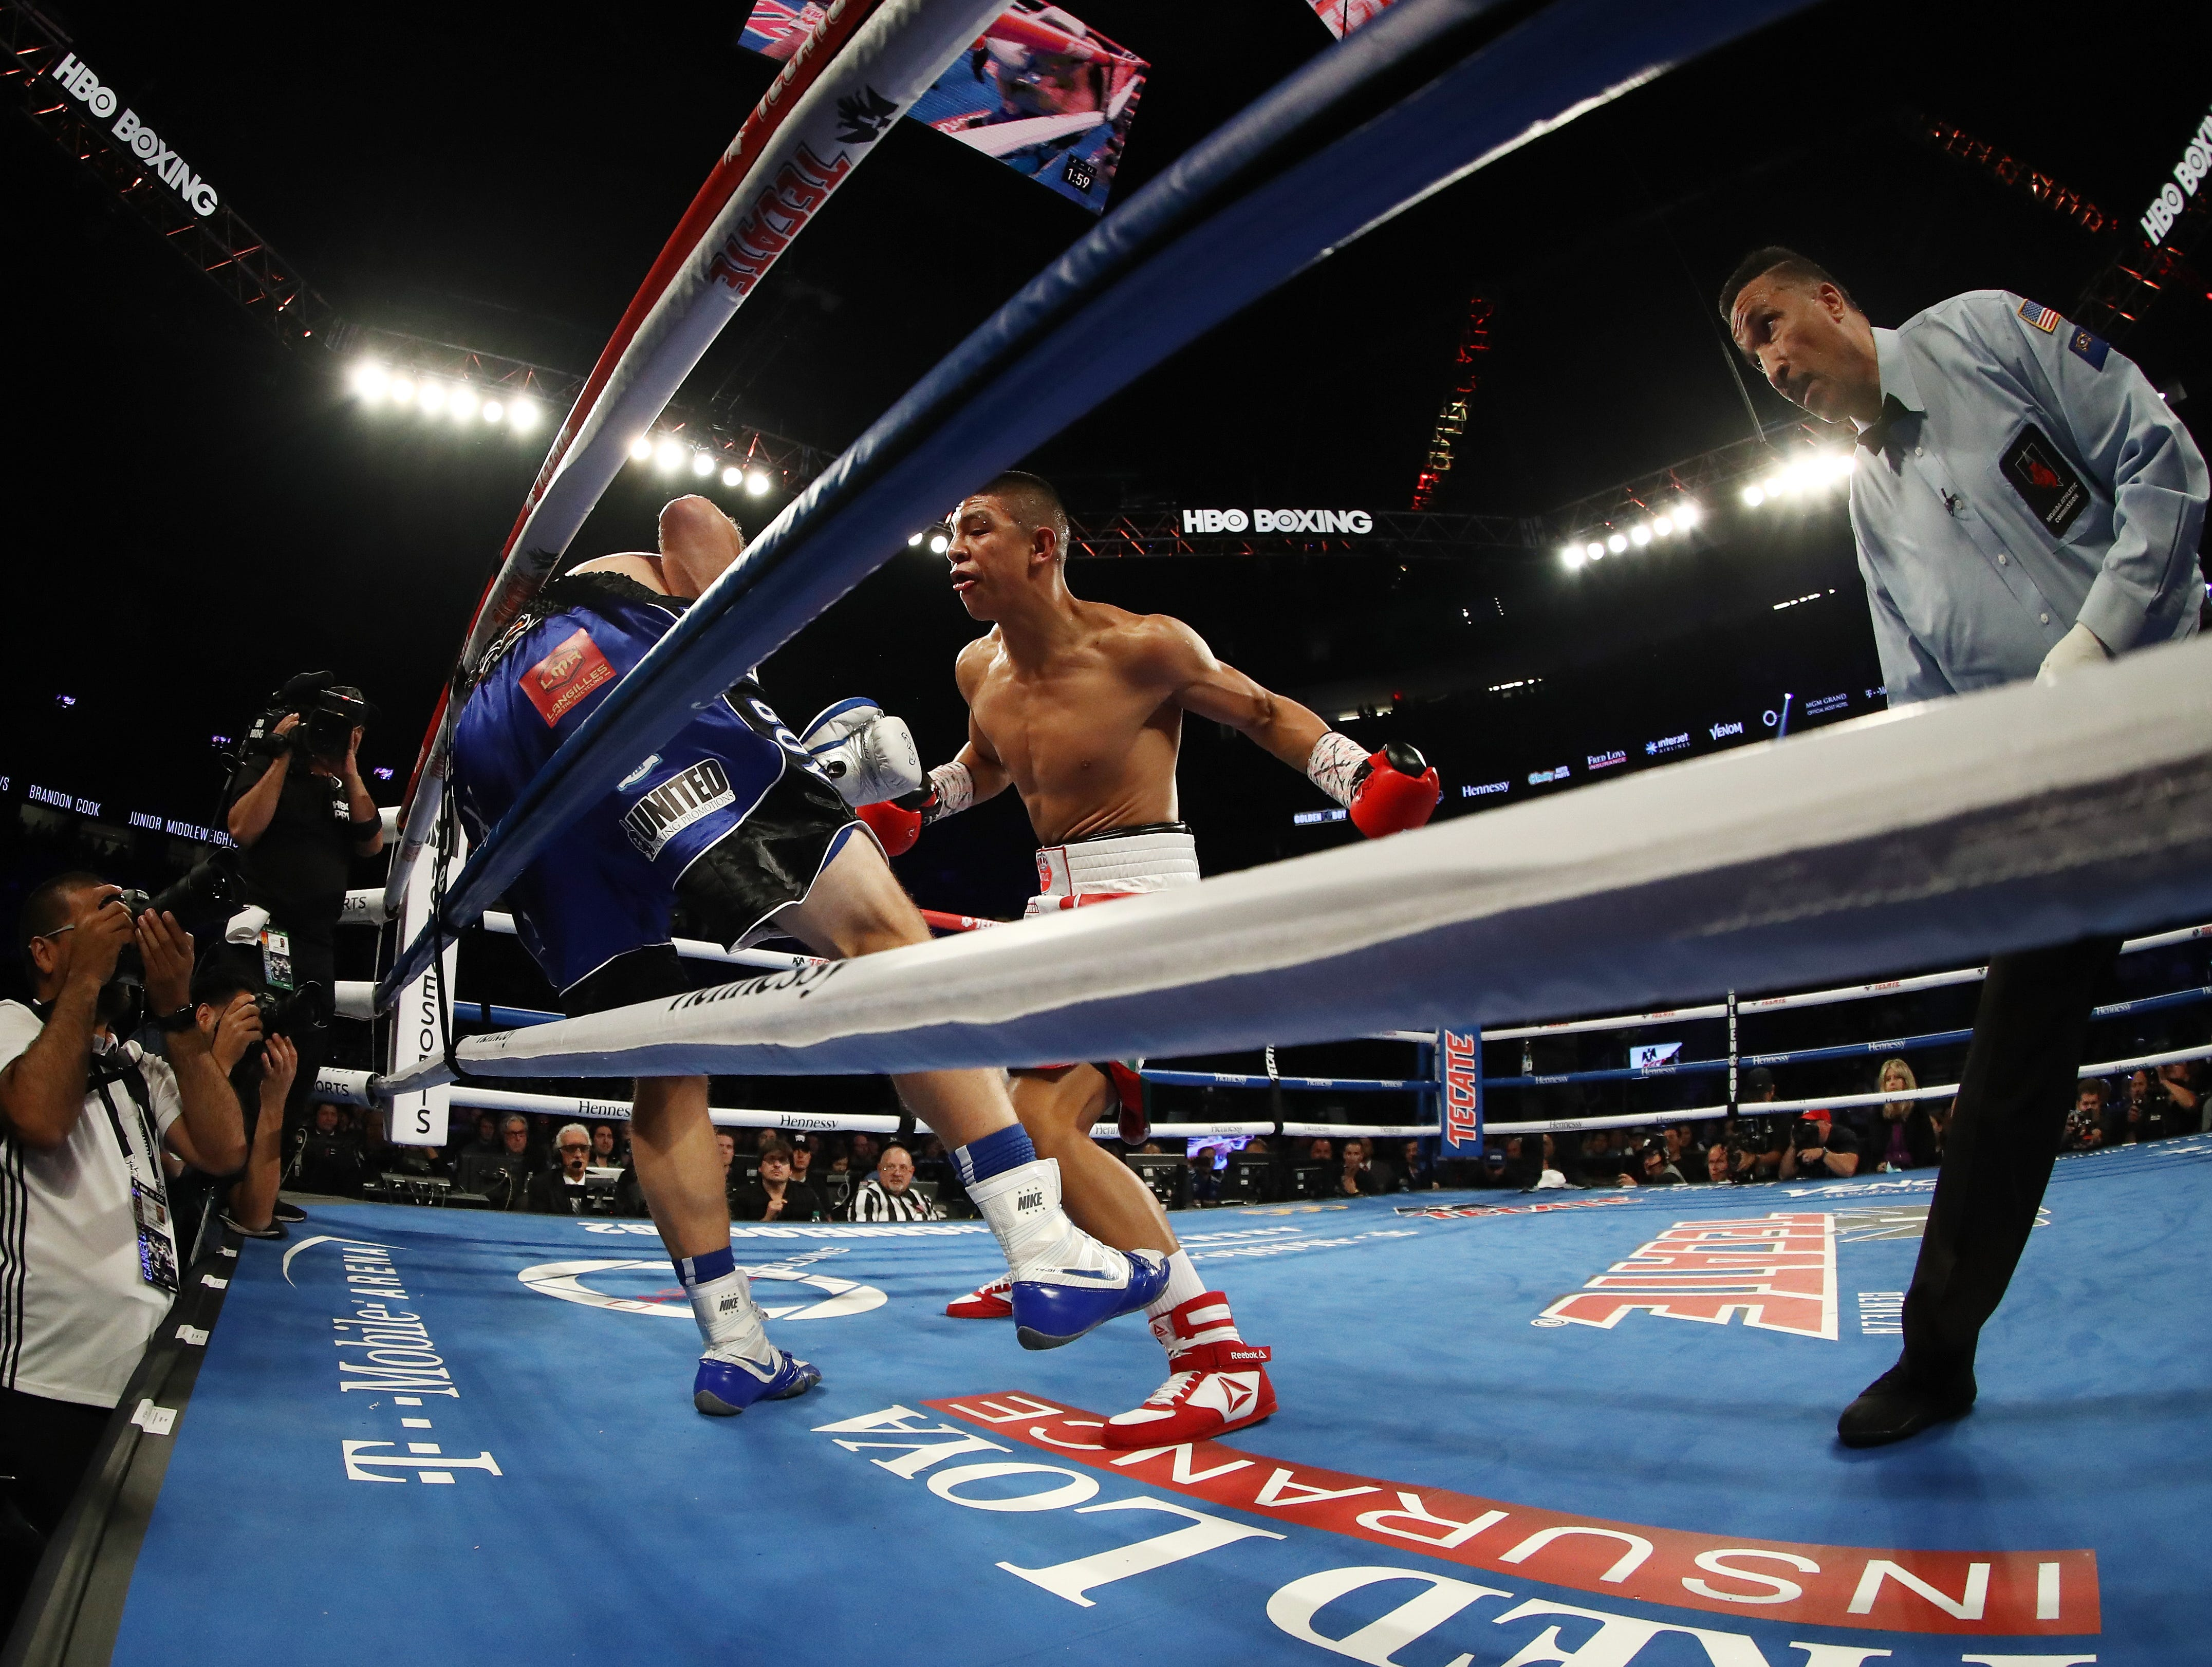 LAS VEGAS, NV - SEPTEMBER 15:  Referee Tony Weeks stops the fight in the third round as Jaime Munguia TKO's Brandon Cook during their WBO junior middleweight title fight  at T-Mobile Arena on September 15, 2018 in Las Vegas, Nevada.  (Photo by Al Bello/Getty Images)